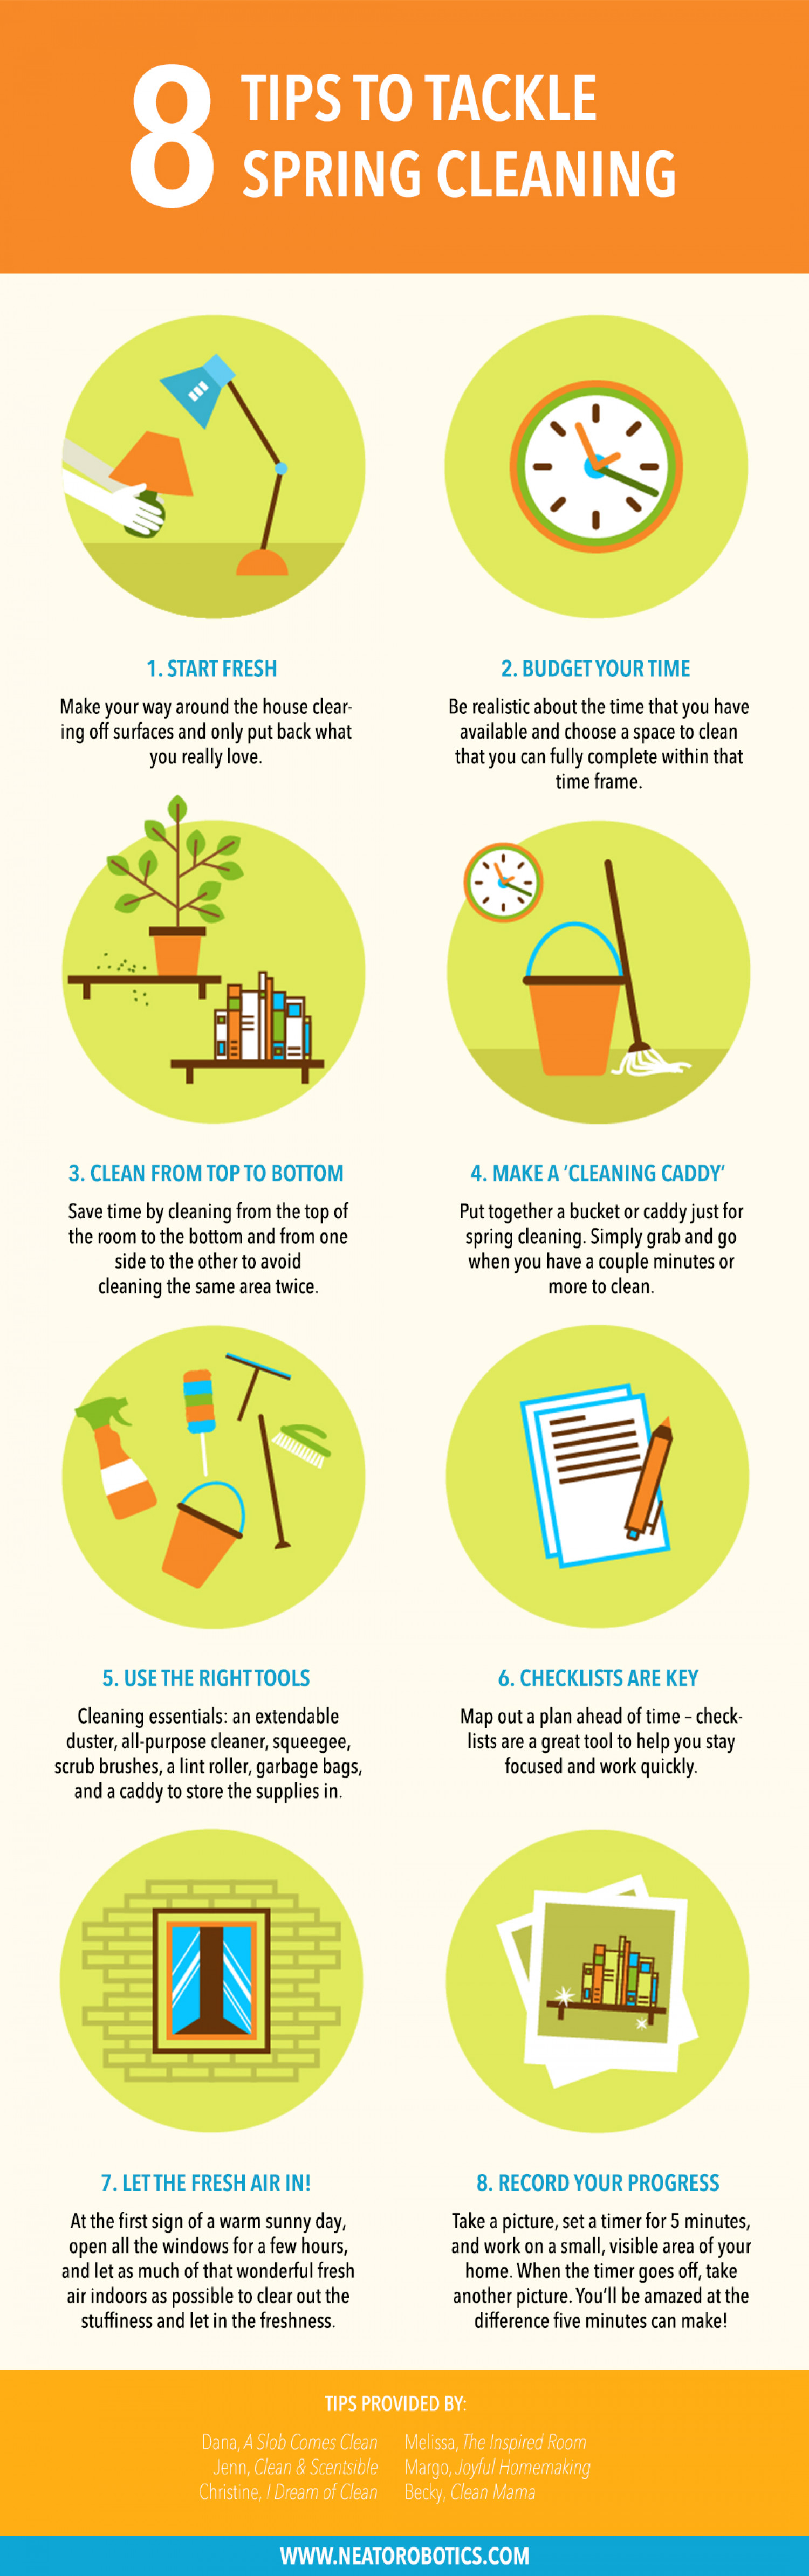 8 Tips to Tackle Spring Cleaning Infographic